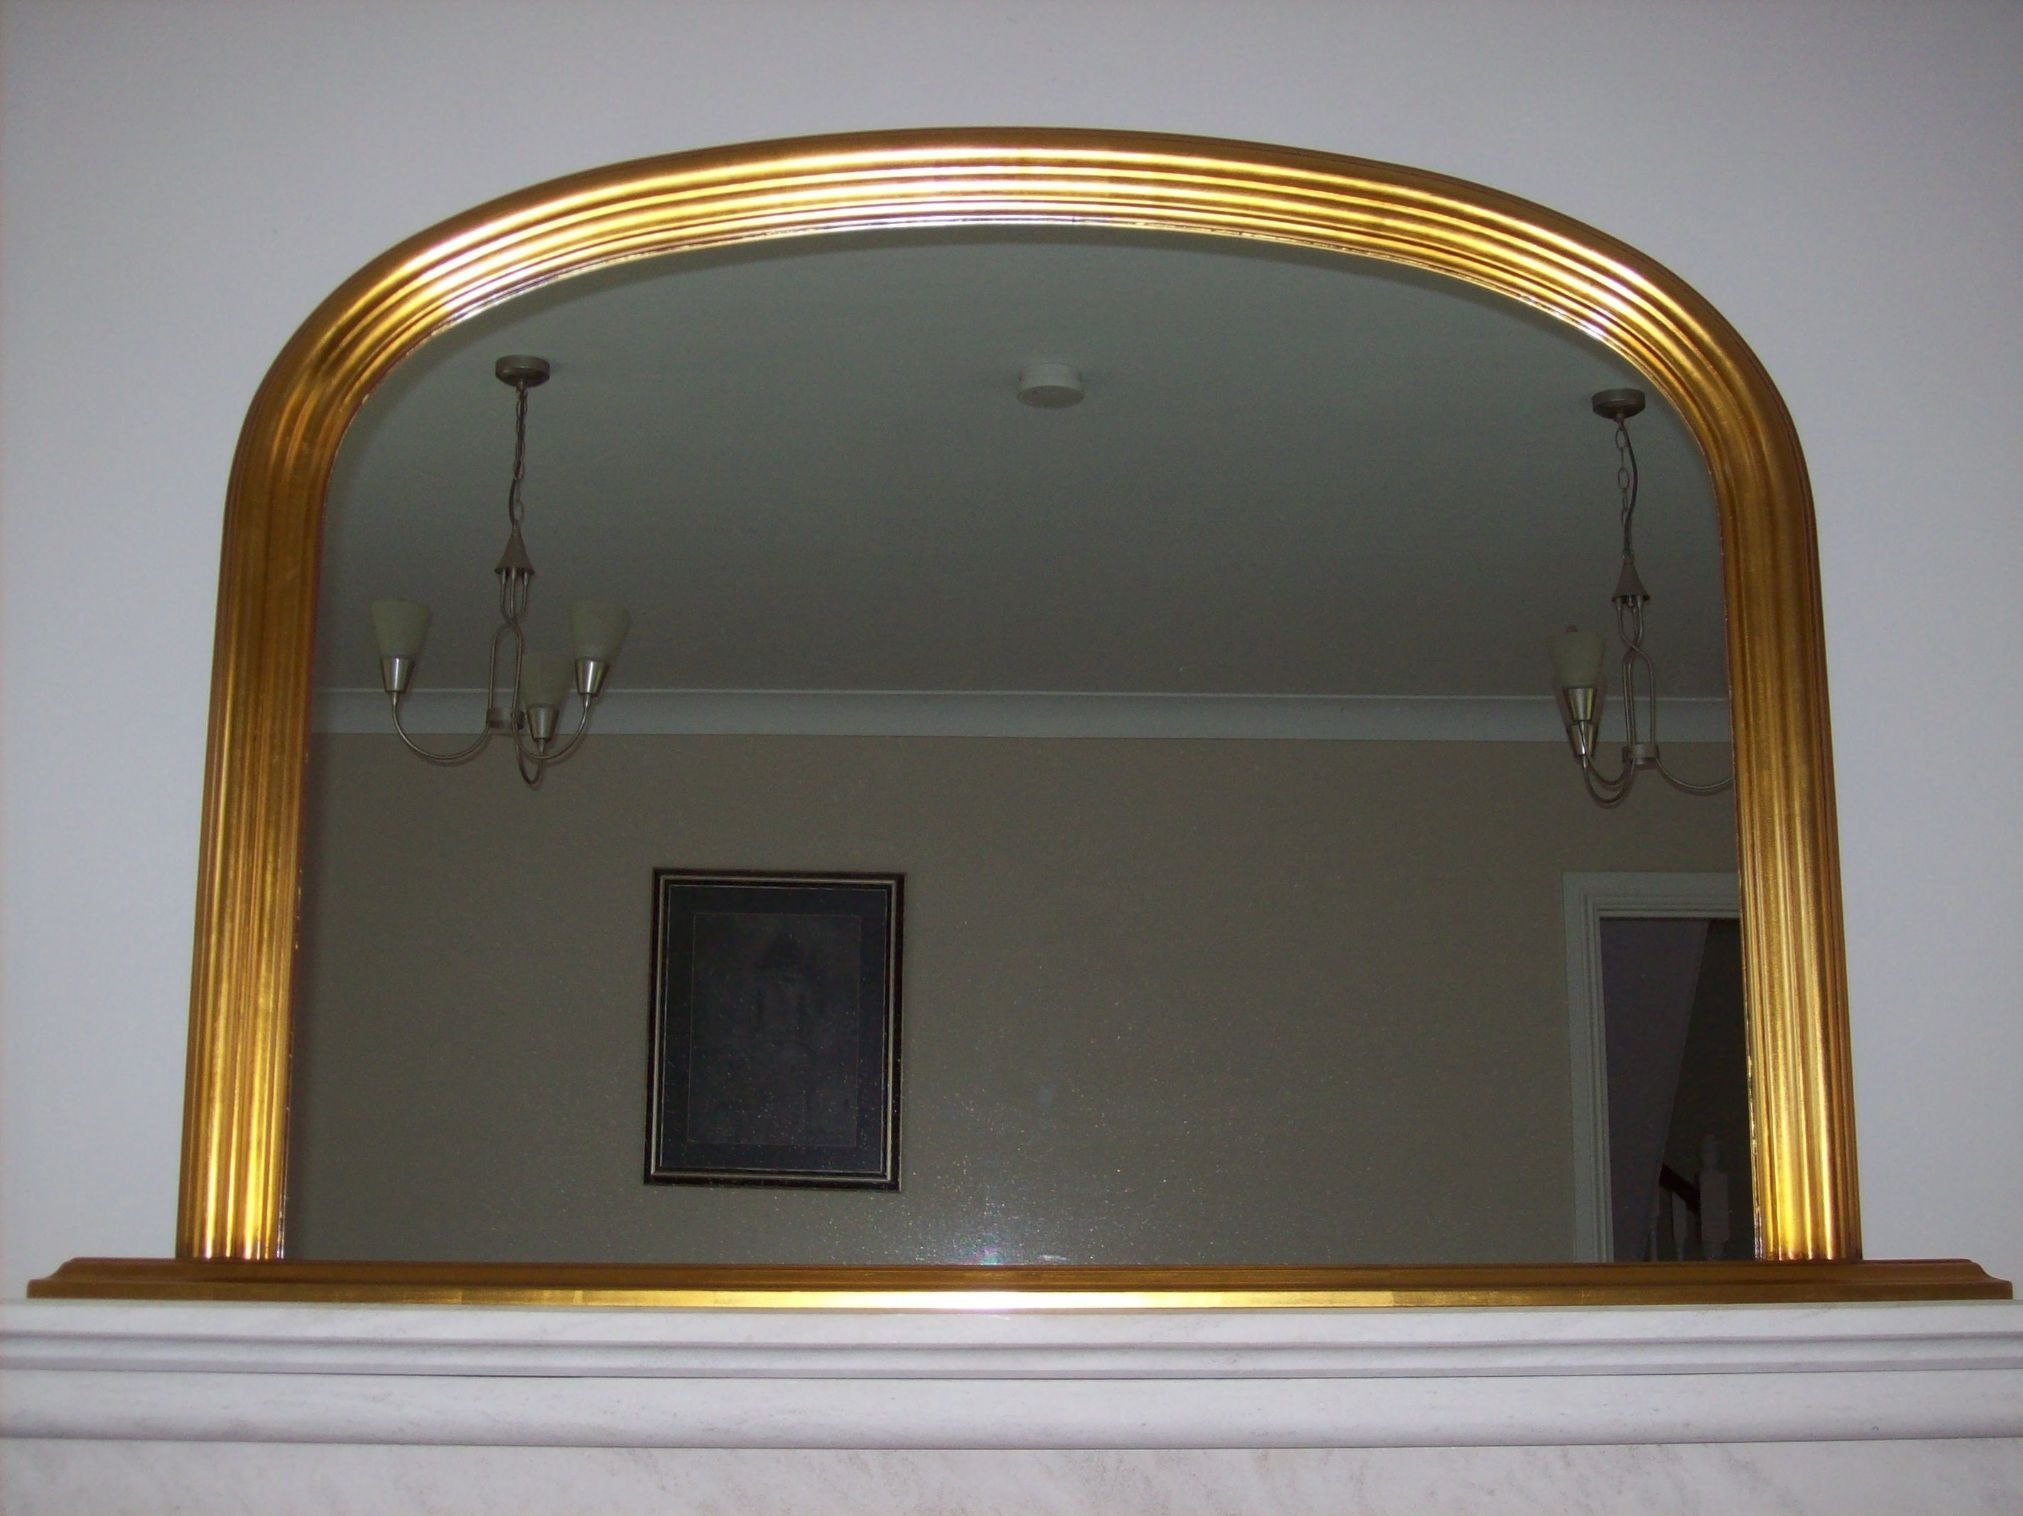 Gold Arched Overmantle Mirror Throughout Overmantel Mirrors (Image 5 of 15)